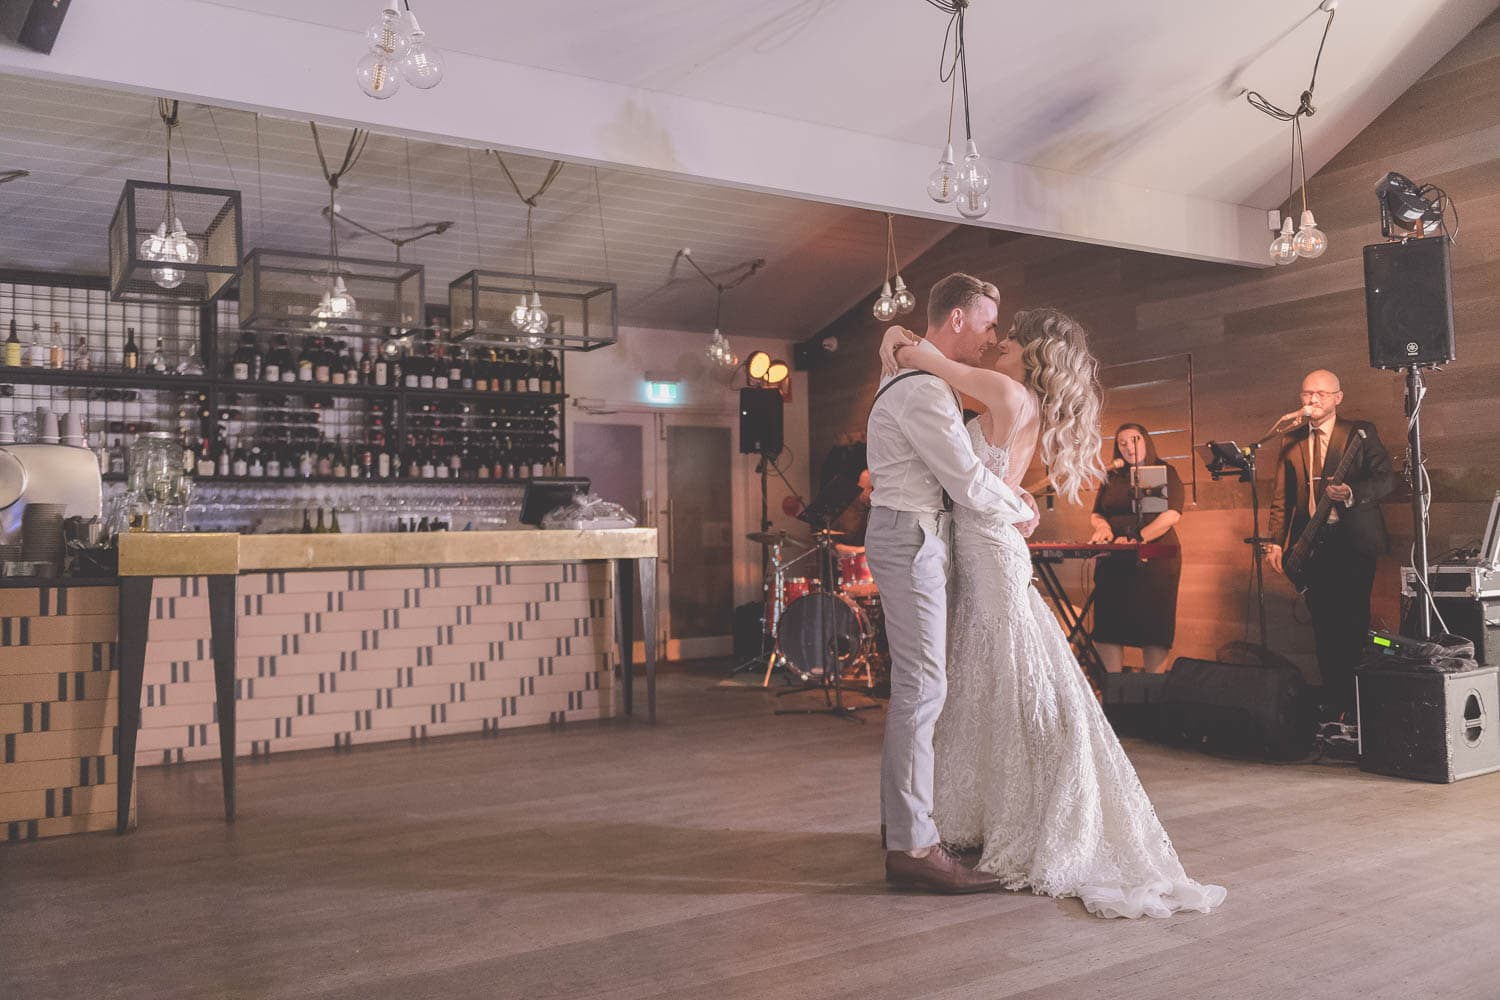 Mornington Peninsula wedding photography at Stillwater Estate - The couples first dance.